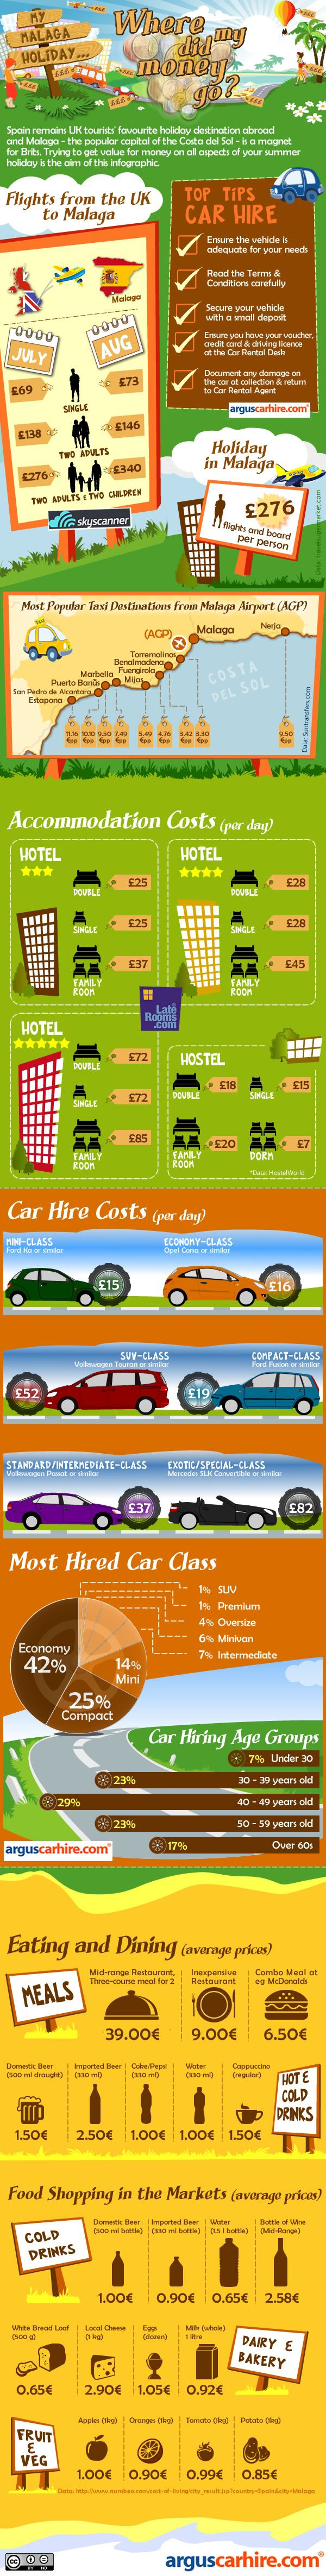 The team at Argus Car Hire has produced this eye-opening infographic. Travelling abroad is a money sapping experience even before you touchdown. An armchair traveller can balk at the costs when viewing Watchdog or Your Money, Their Tricks. In this infographic we've compiled the cheapest prices for car hire, flights, food and accommodation to give a canny holiday-goer an insight for their summer break budget.